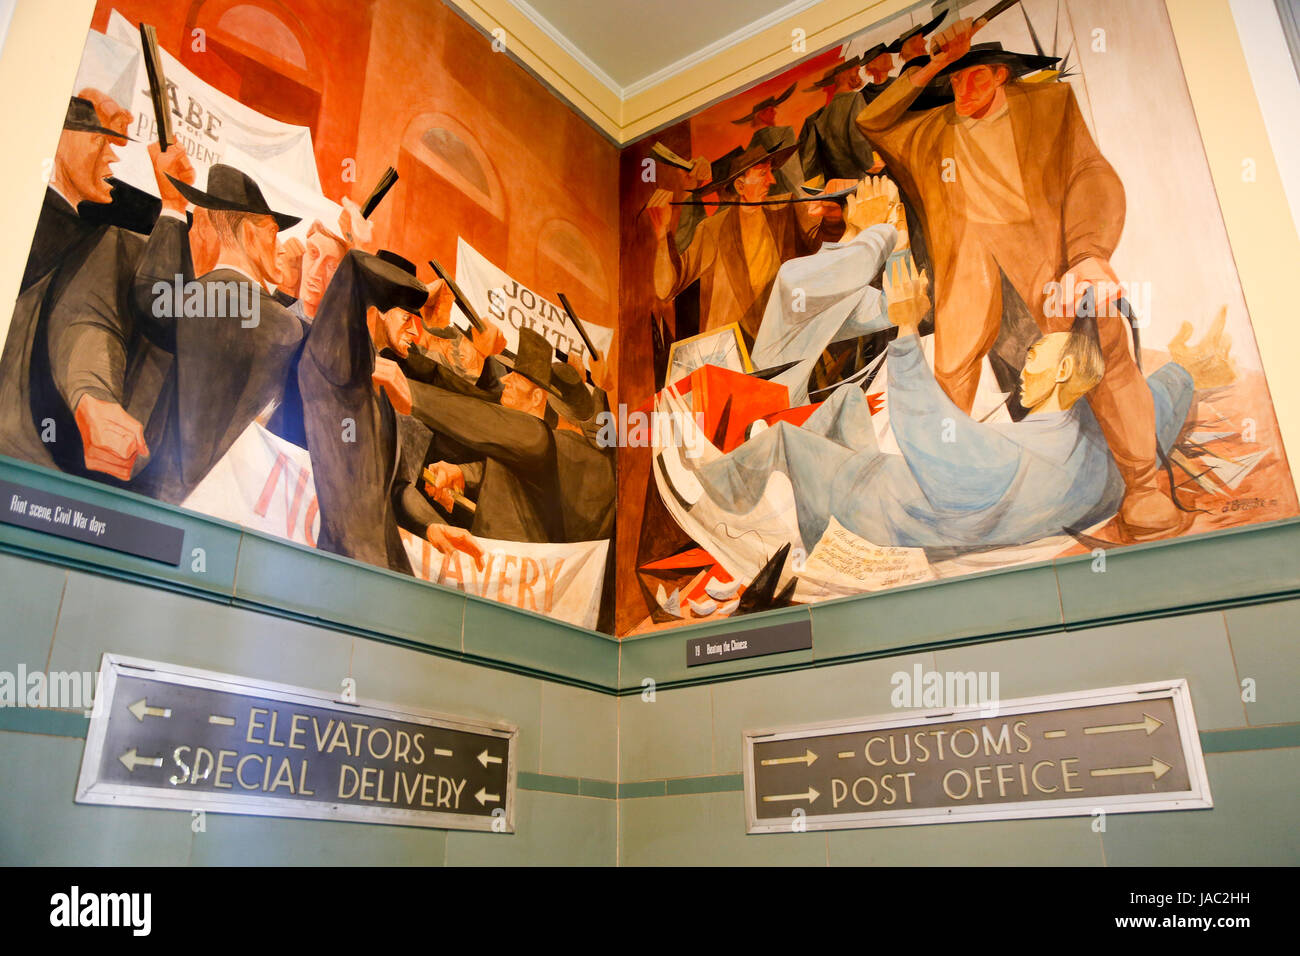 Wall paintings at the Rincon Annex Post Office in Spear Street tell about the history of the city. San Francisco, - Stock Image